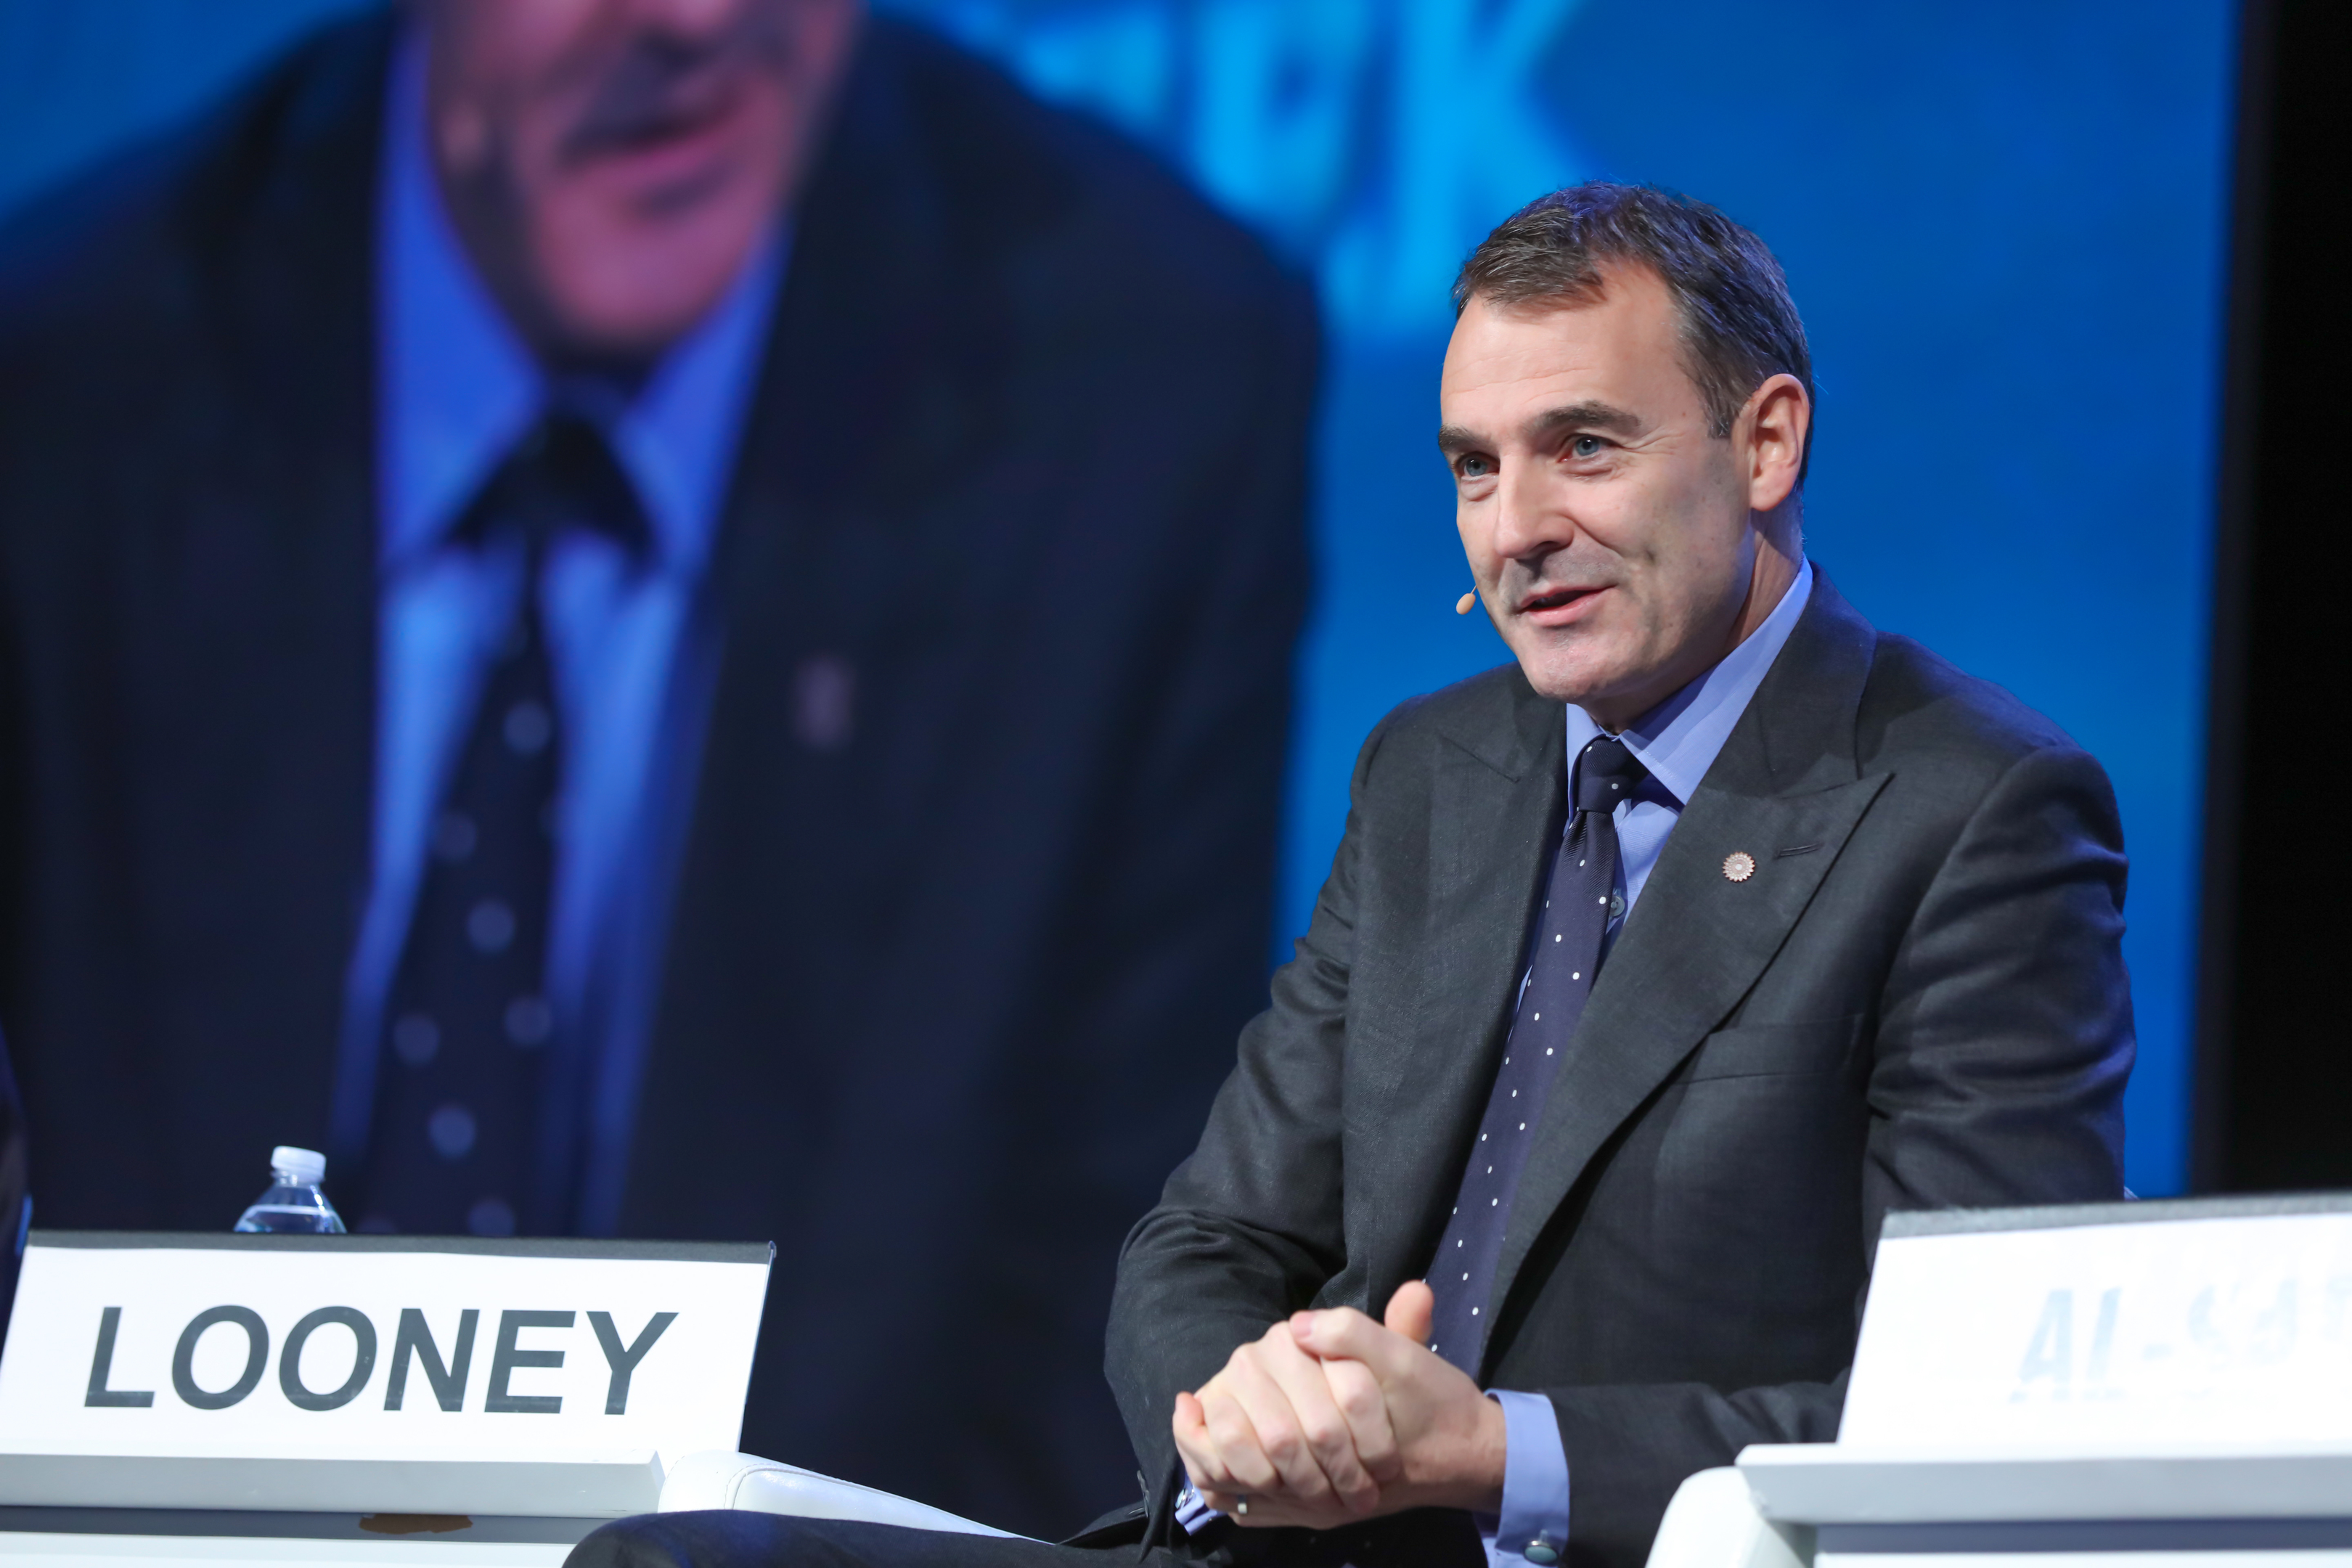 BP Upstream CEO Bernard Looney